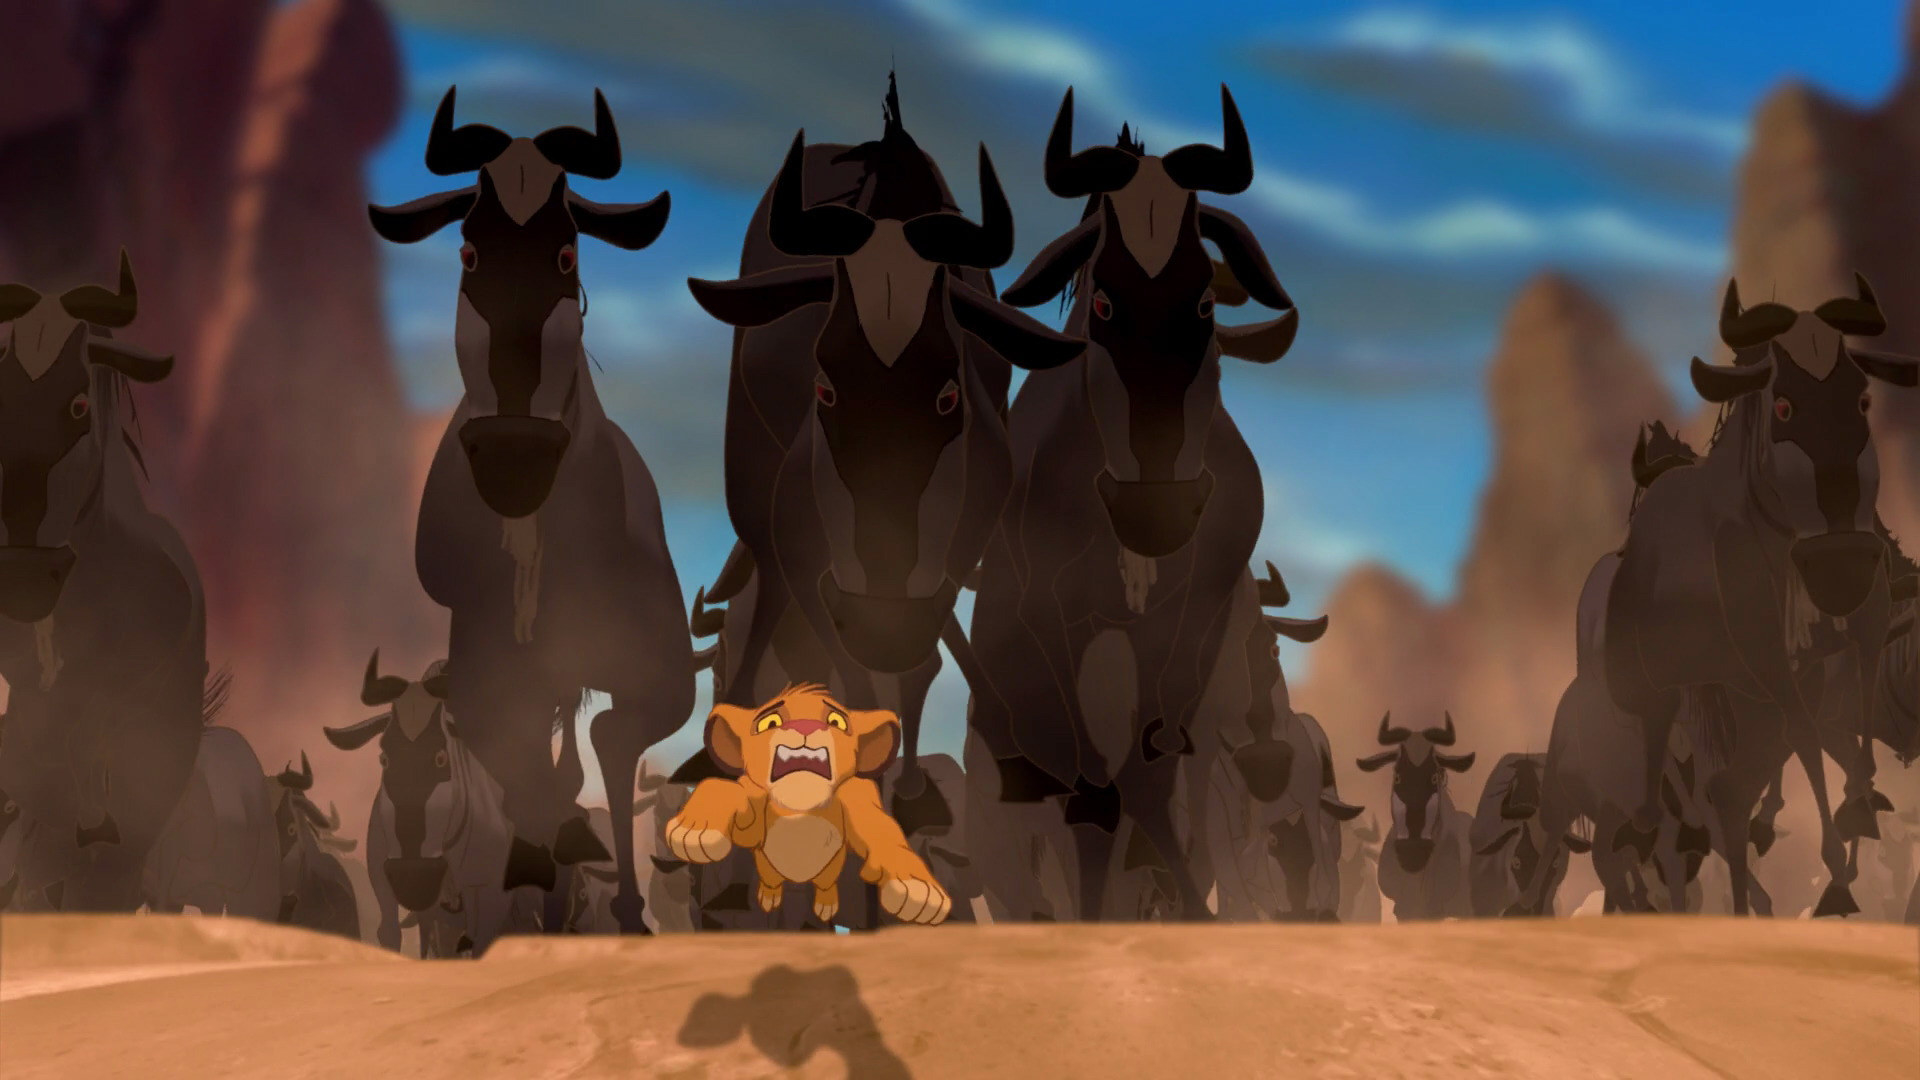 Simba runs away from a wildebeest stampede